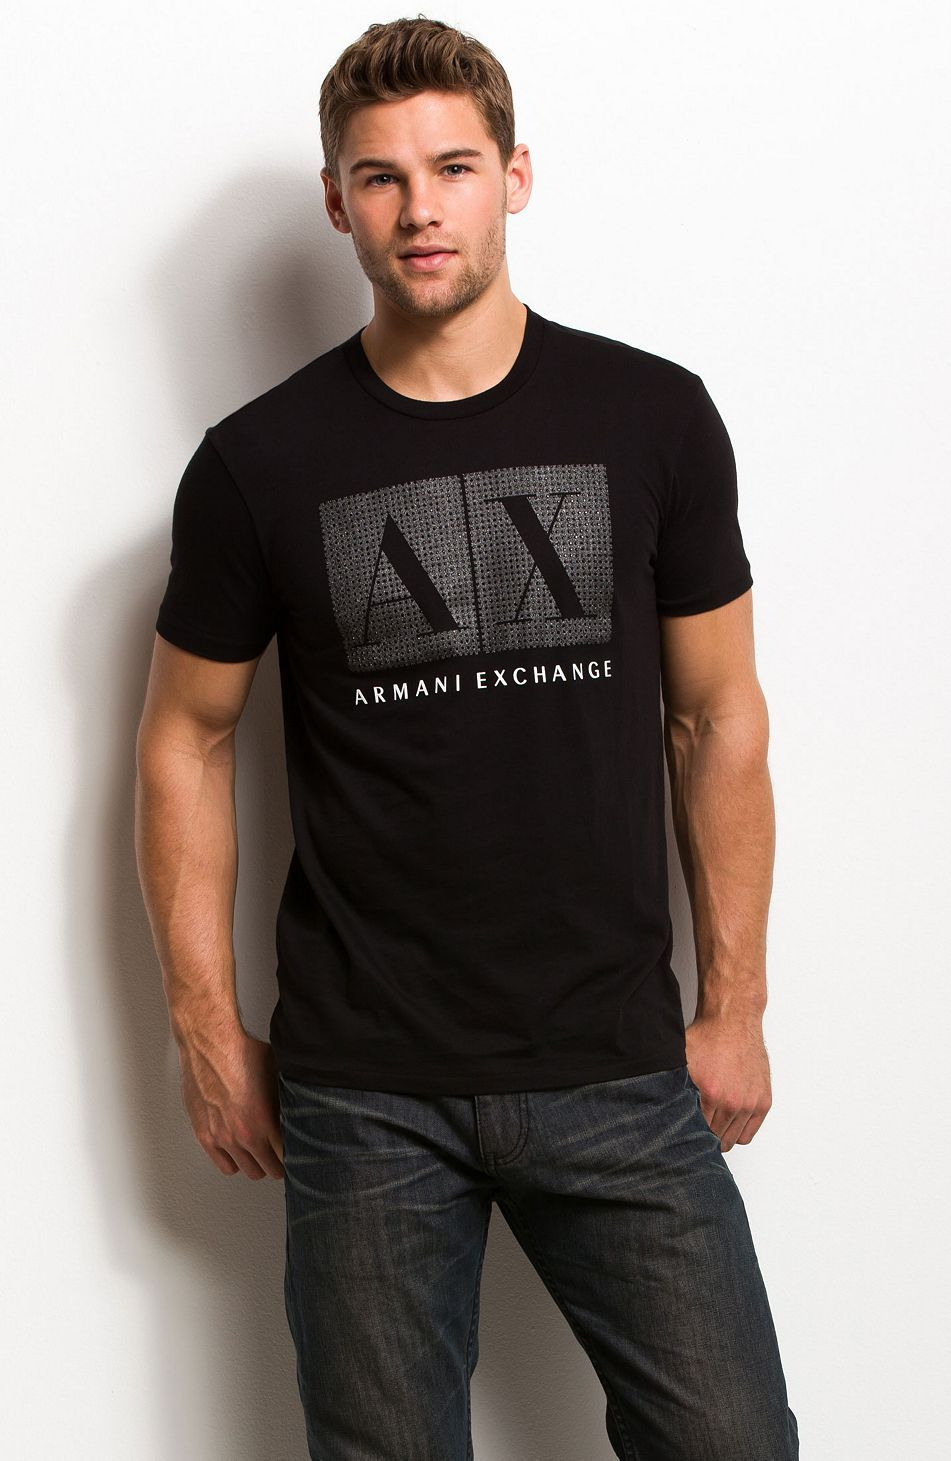 f88f3079638 Rhinestone Box Logo Tee - Tee Shirts - Mens - Armani Exchange